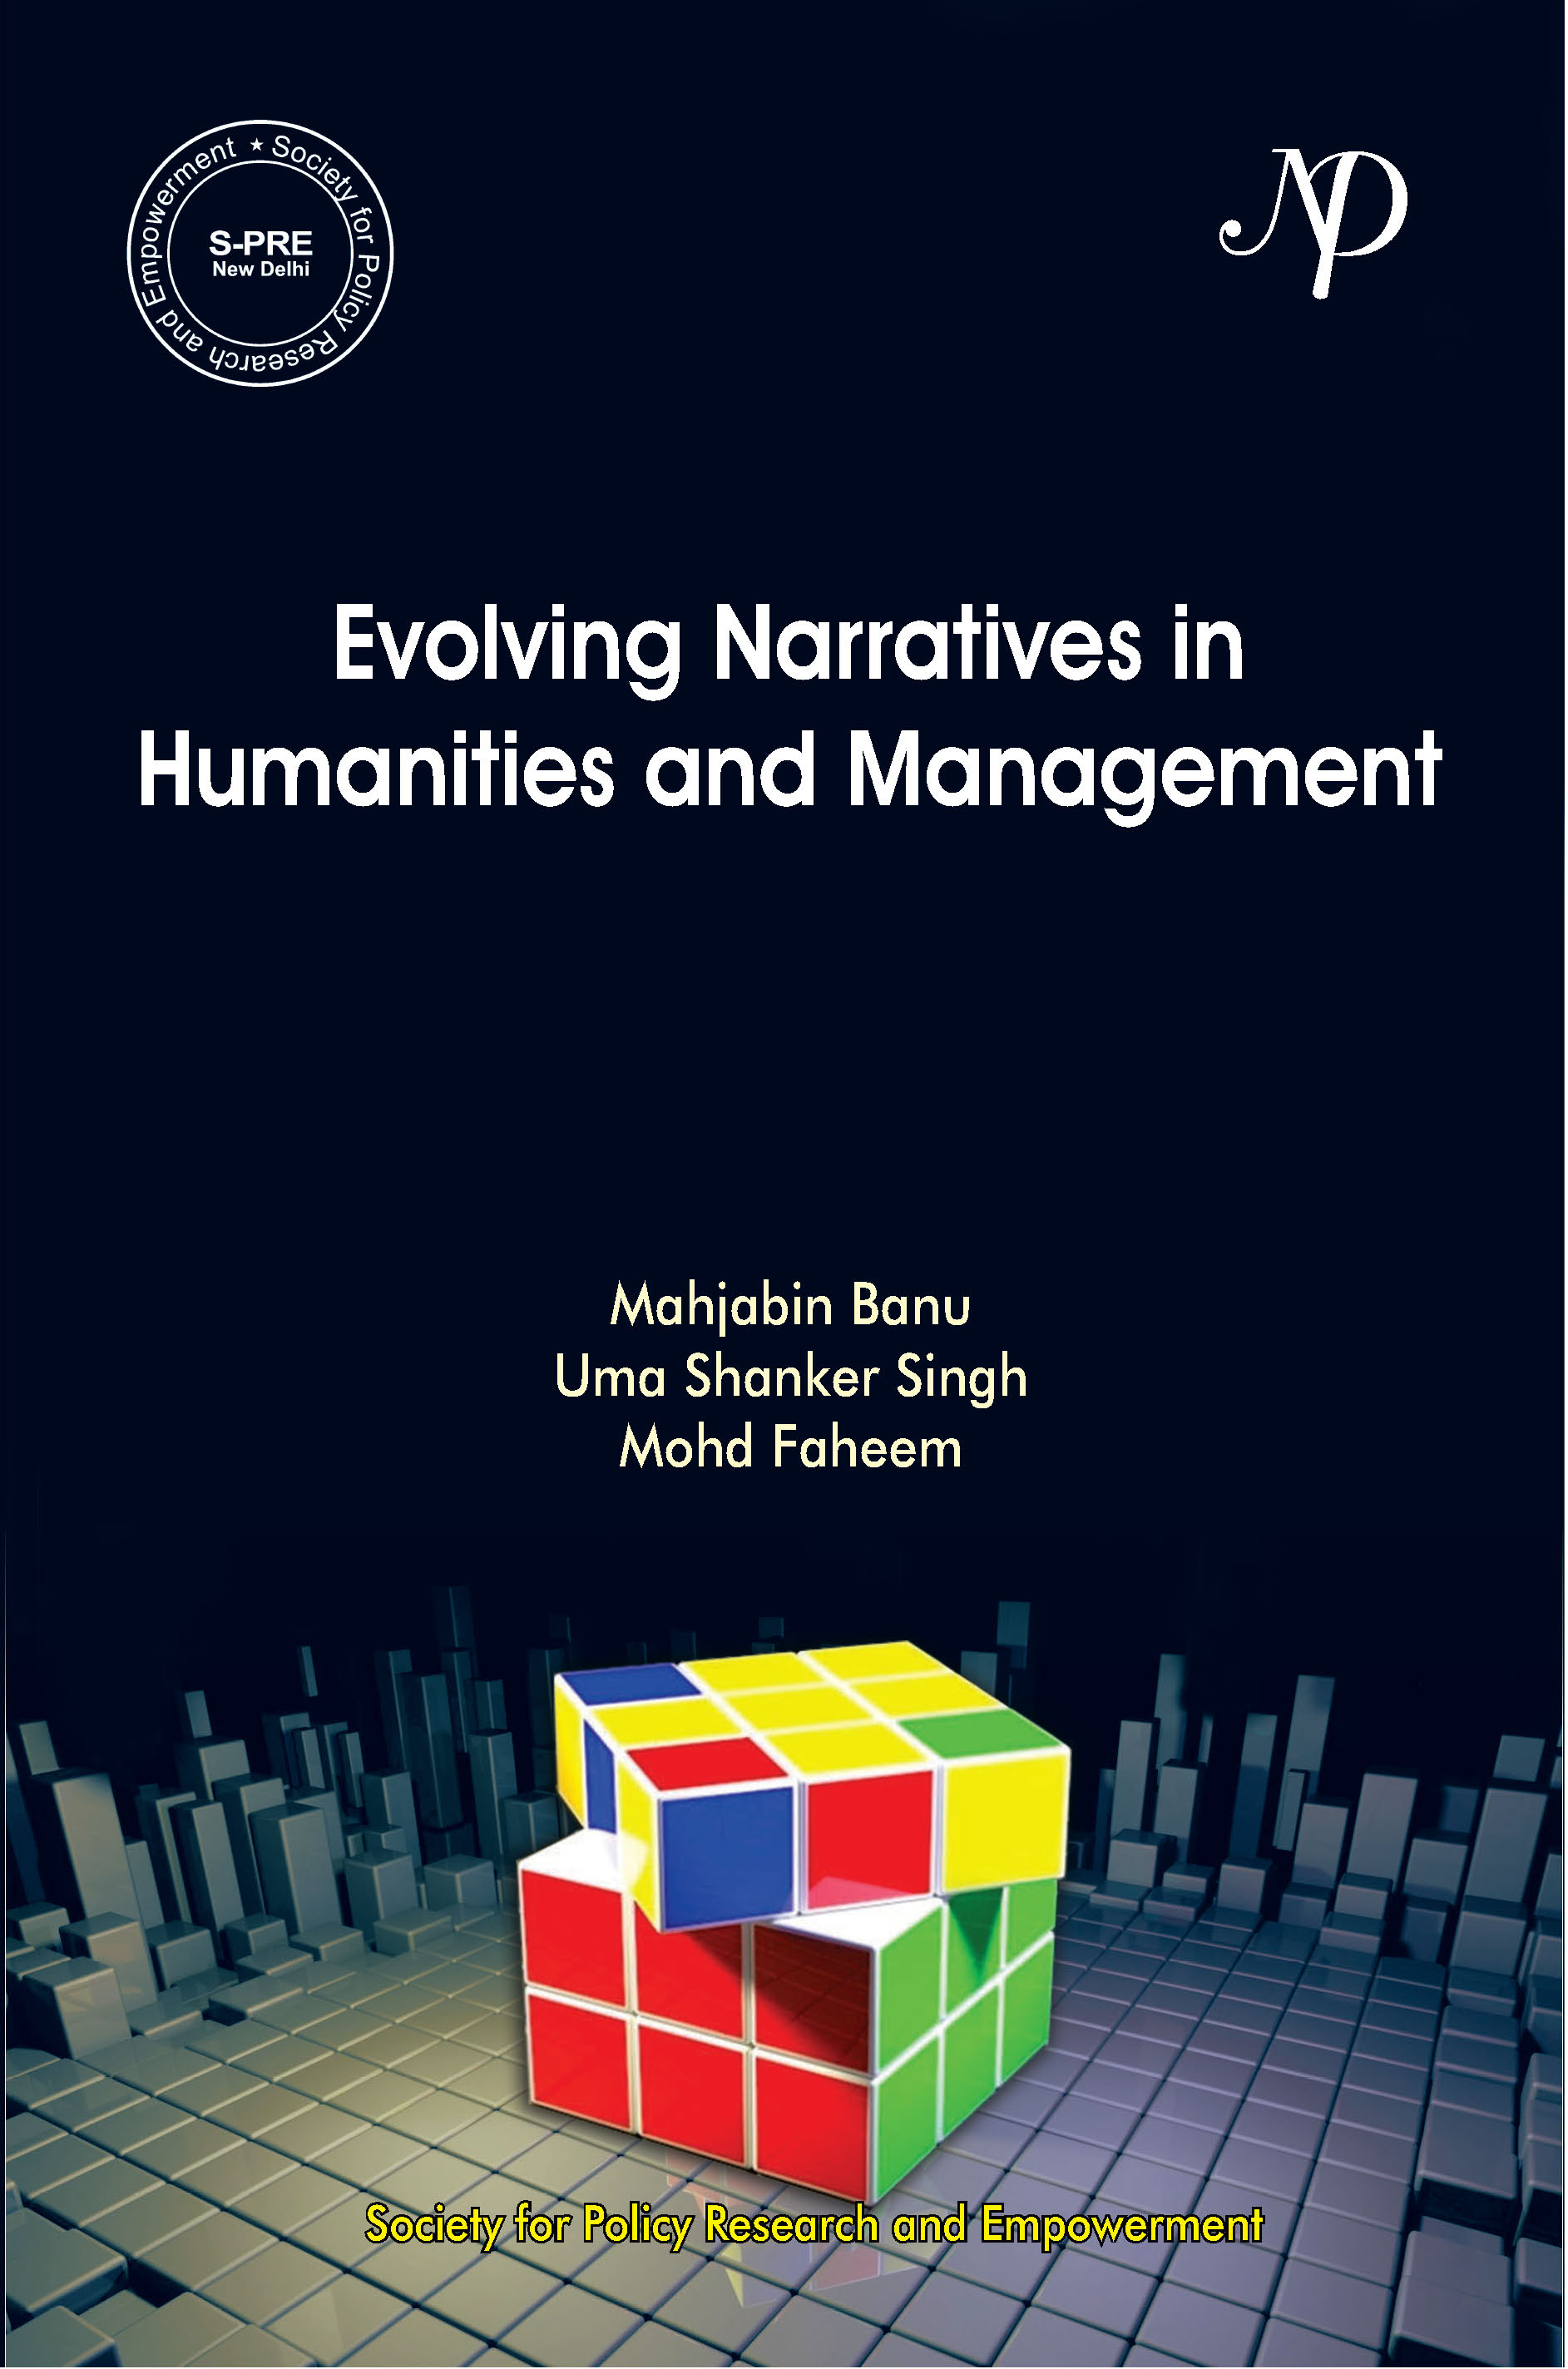 Evolving Narratives in Humanities, Management and Sustainable development Cover 5 Feb 2019.jpg